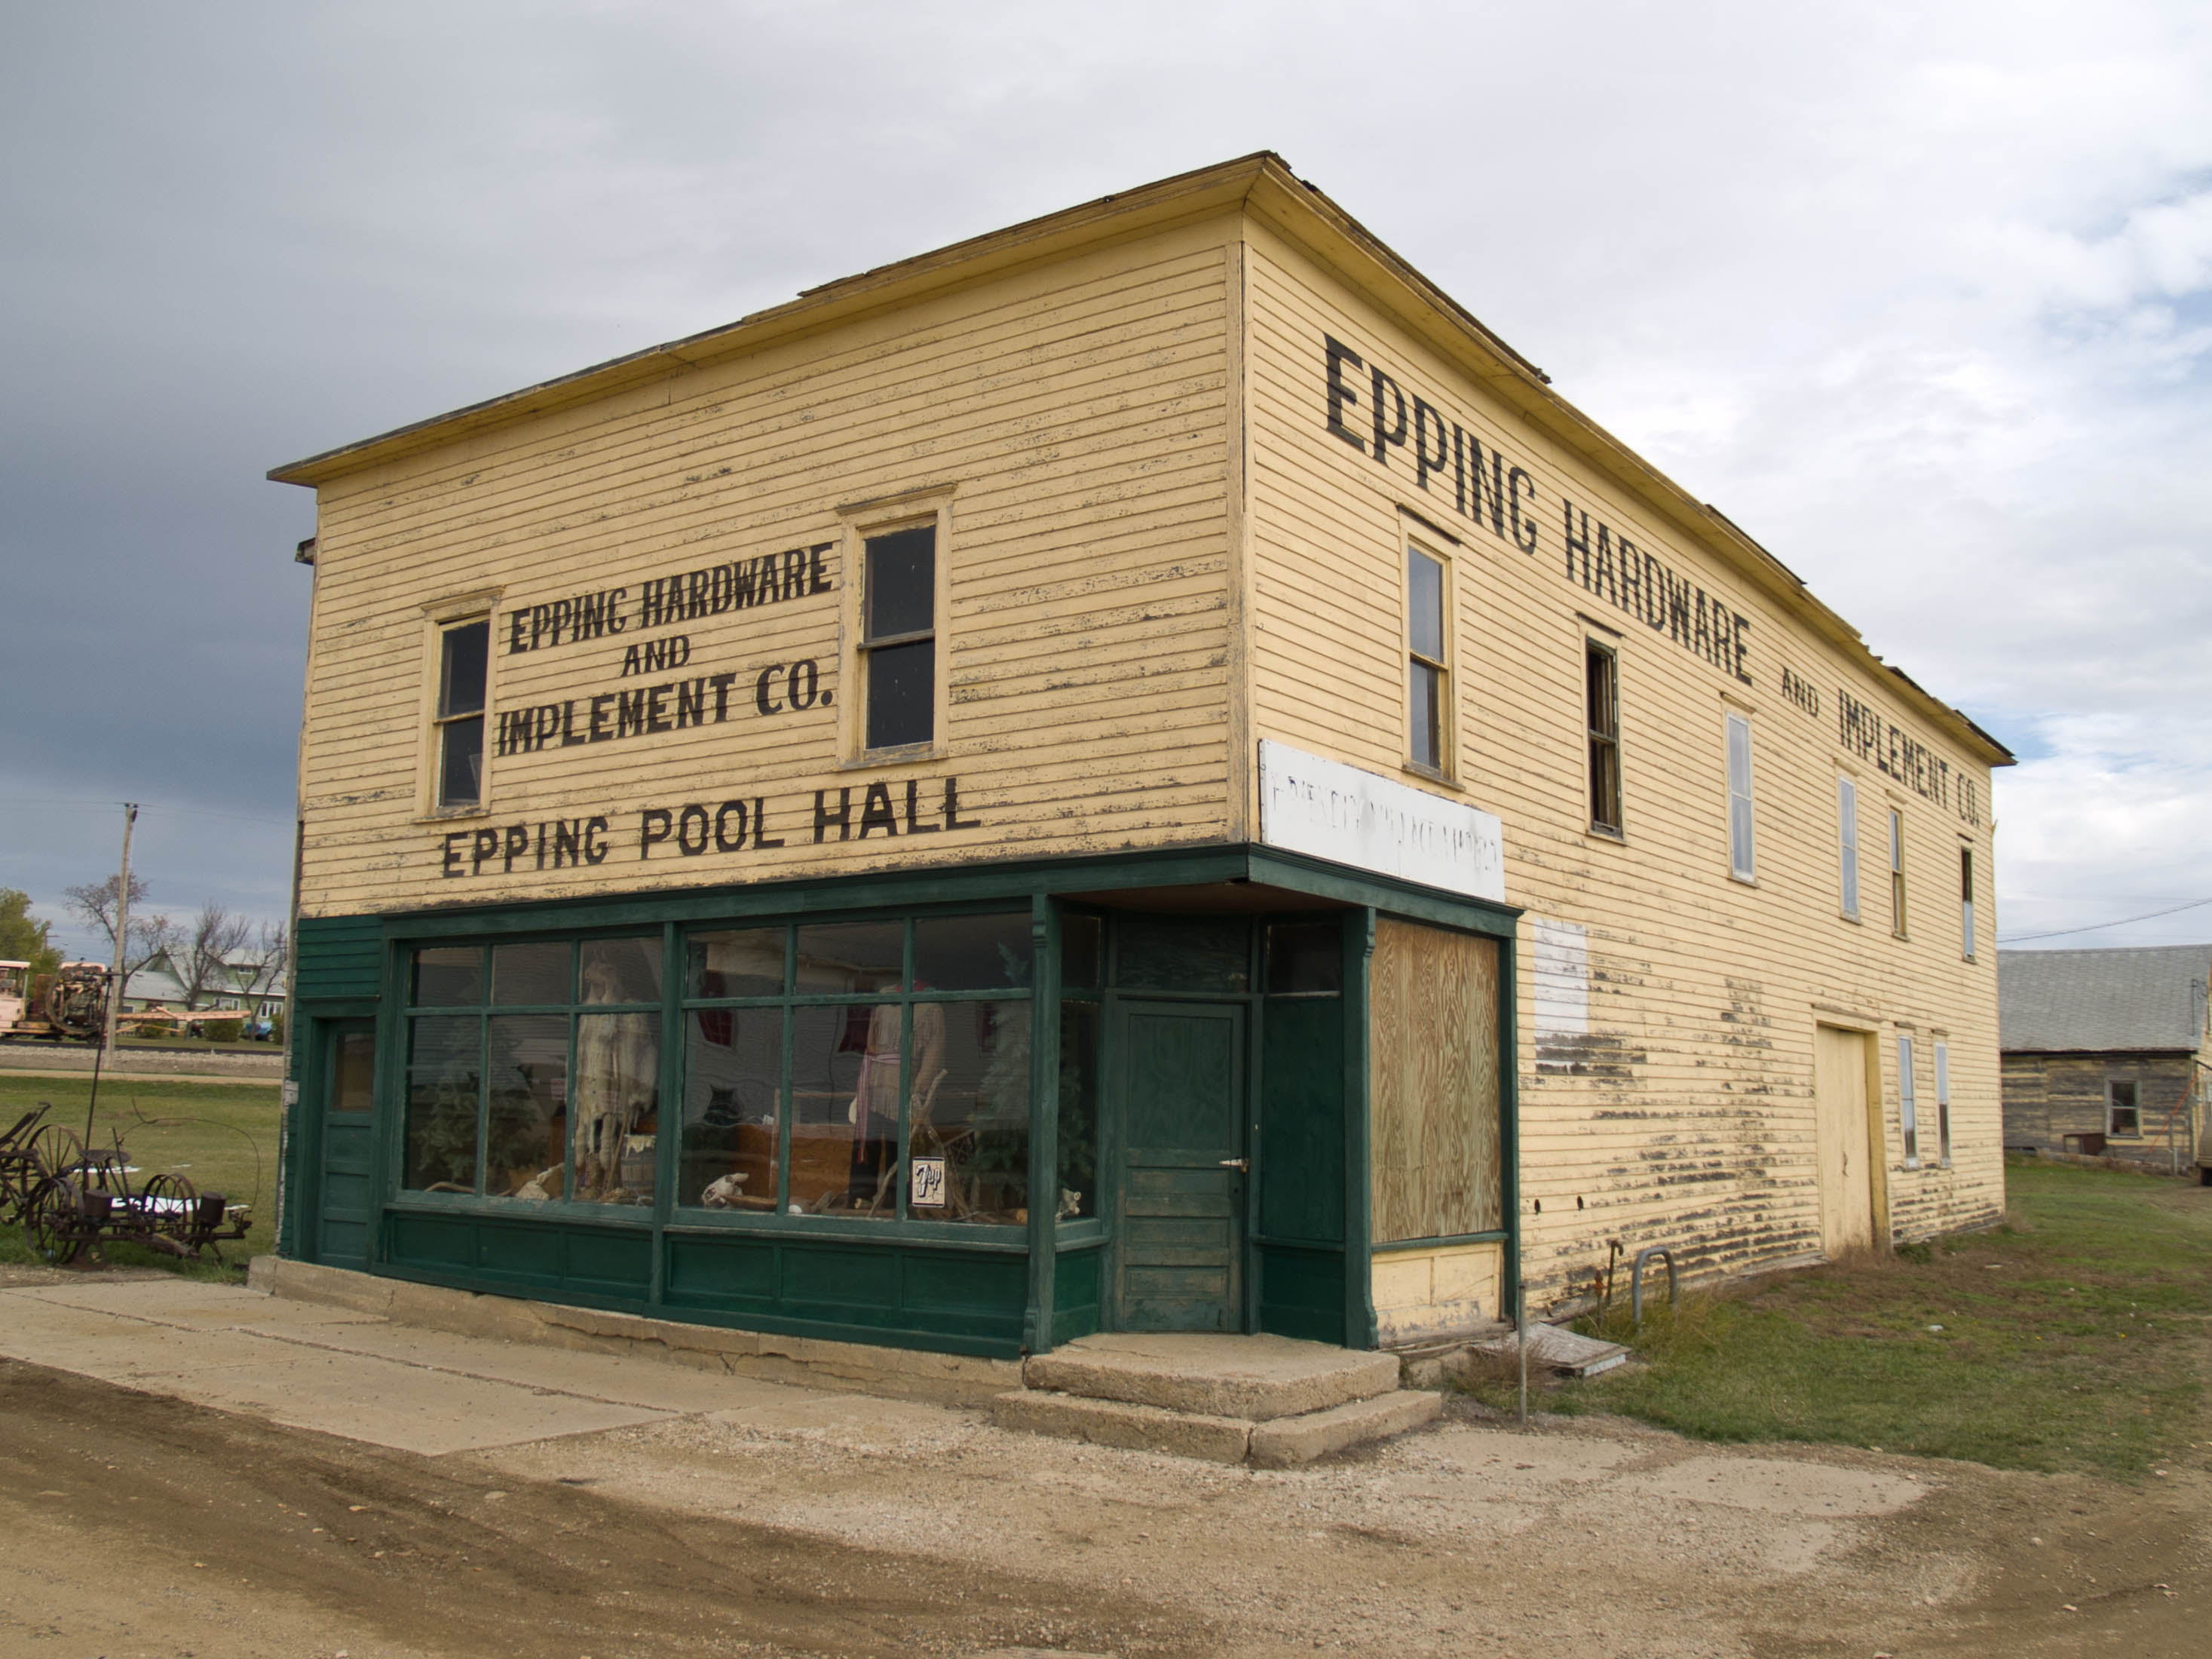 Epping funeral homes funeral services flowers in north for Home builders in north dakota